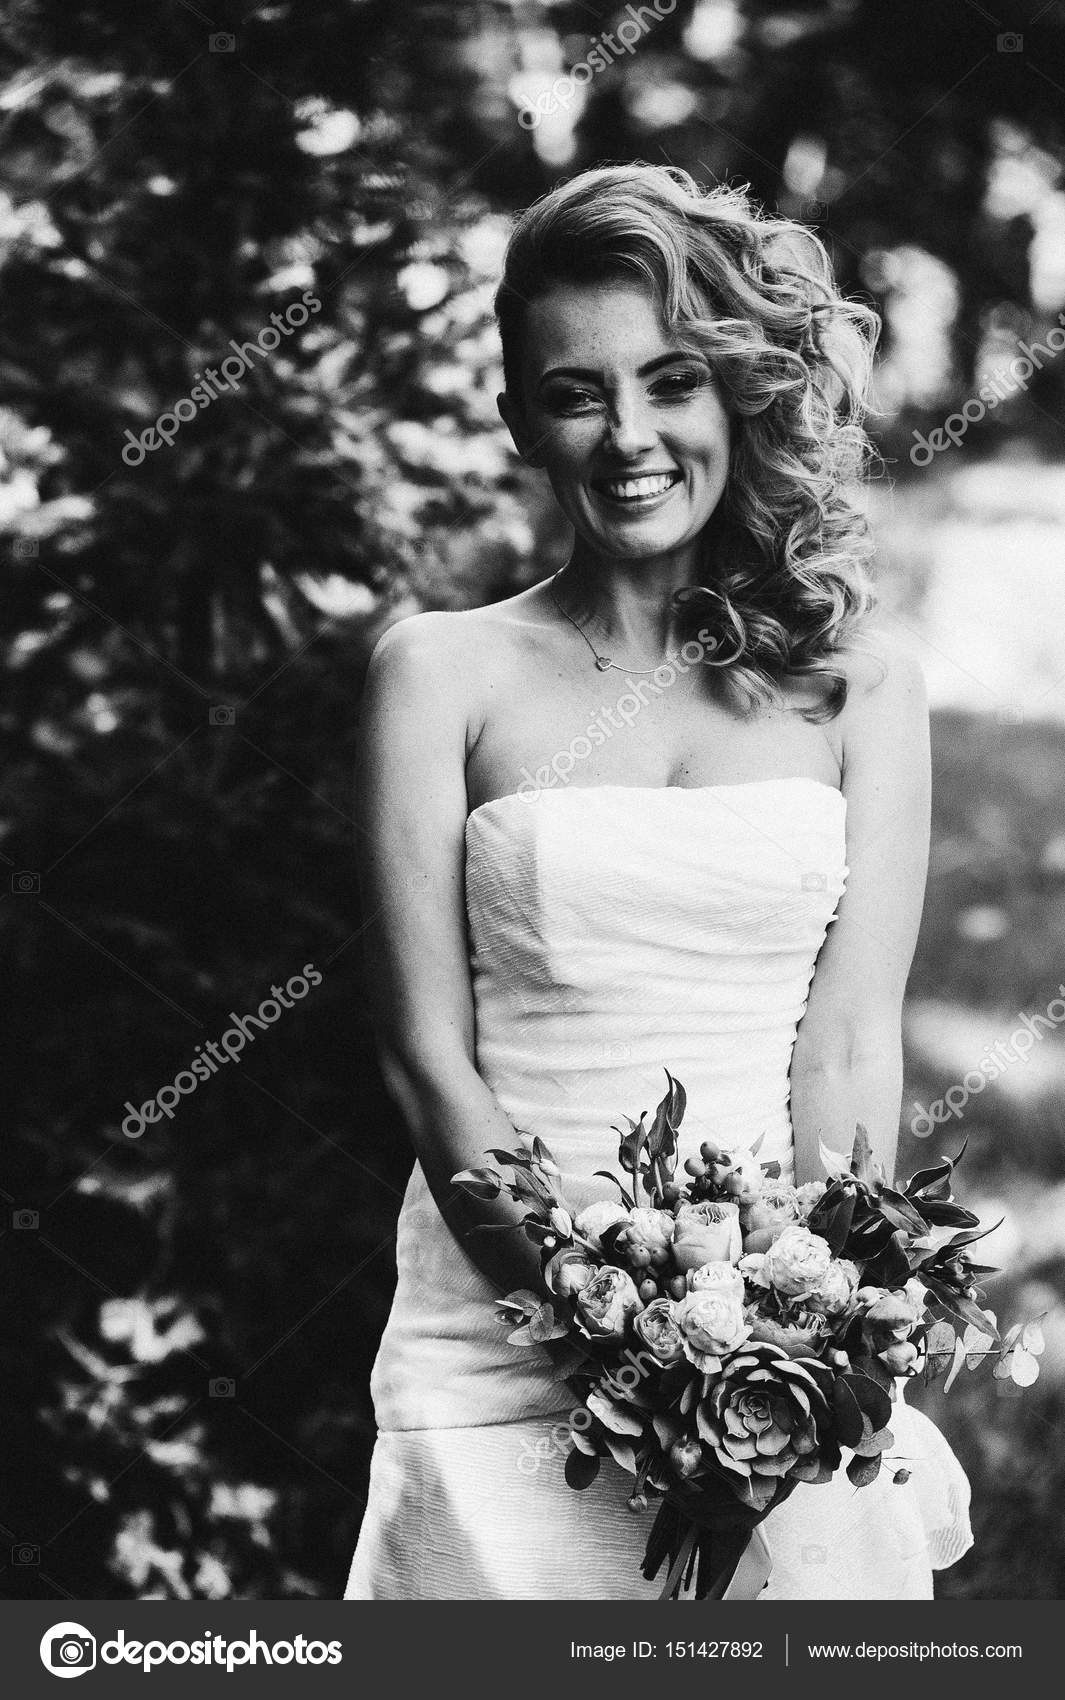 Bride Posing With Bouquet Of Flowers Stock Photo Andreygribov